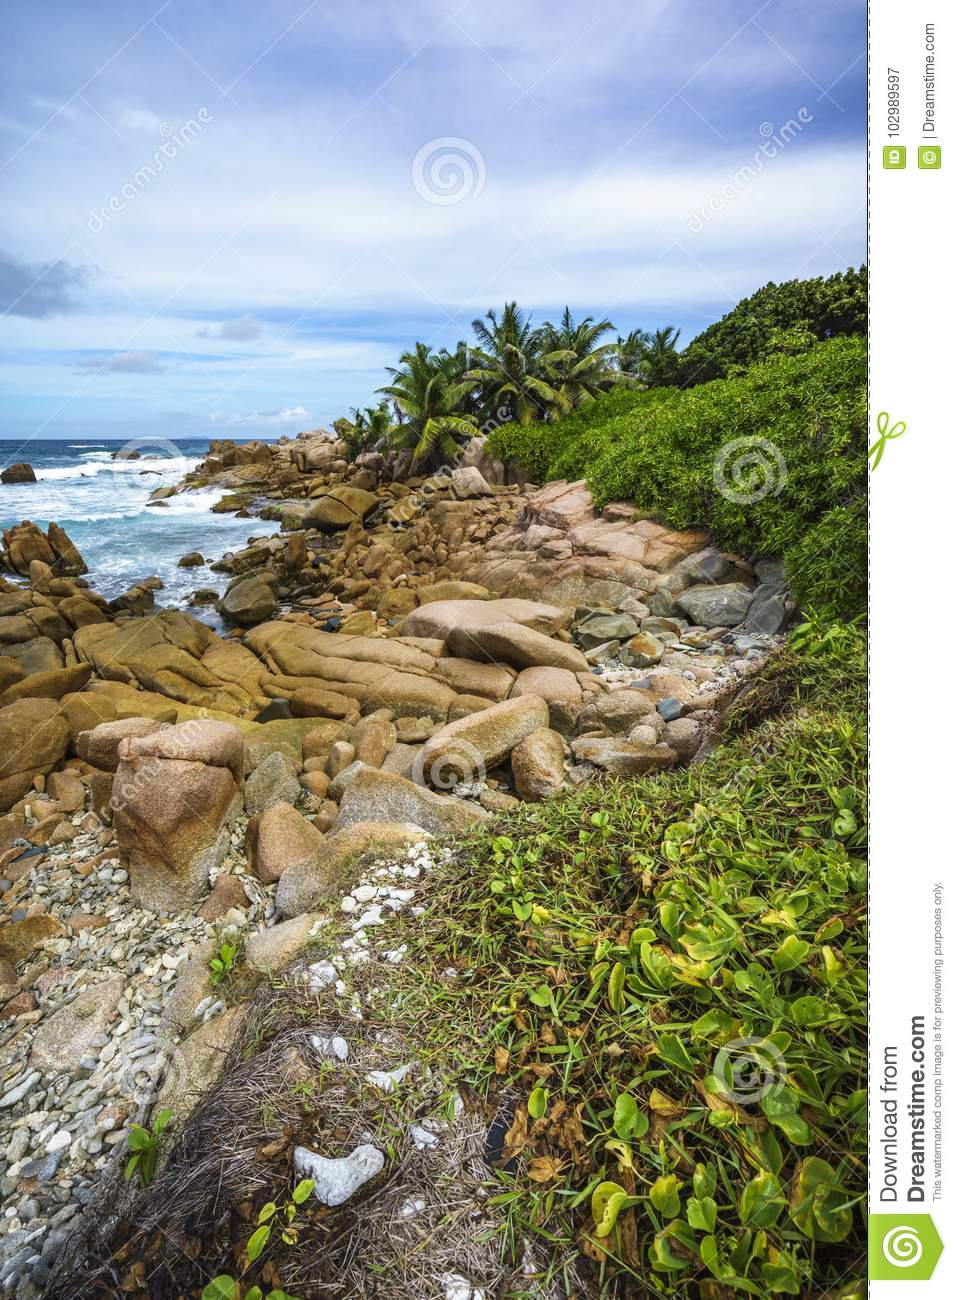 Hiking The Rough And Wild Rocky Coastline At Anse Songe La Digue Seychelles Lush Green Grass Palm Trees Granite Rocks And The Indian Ocean